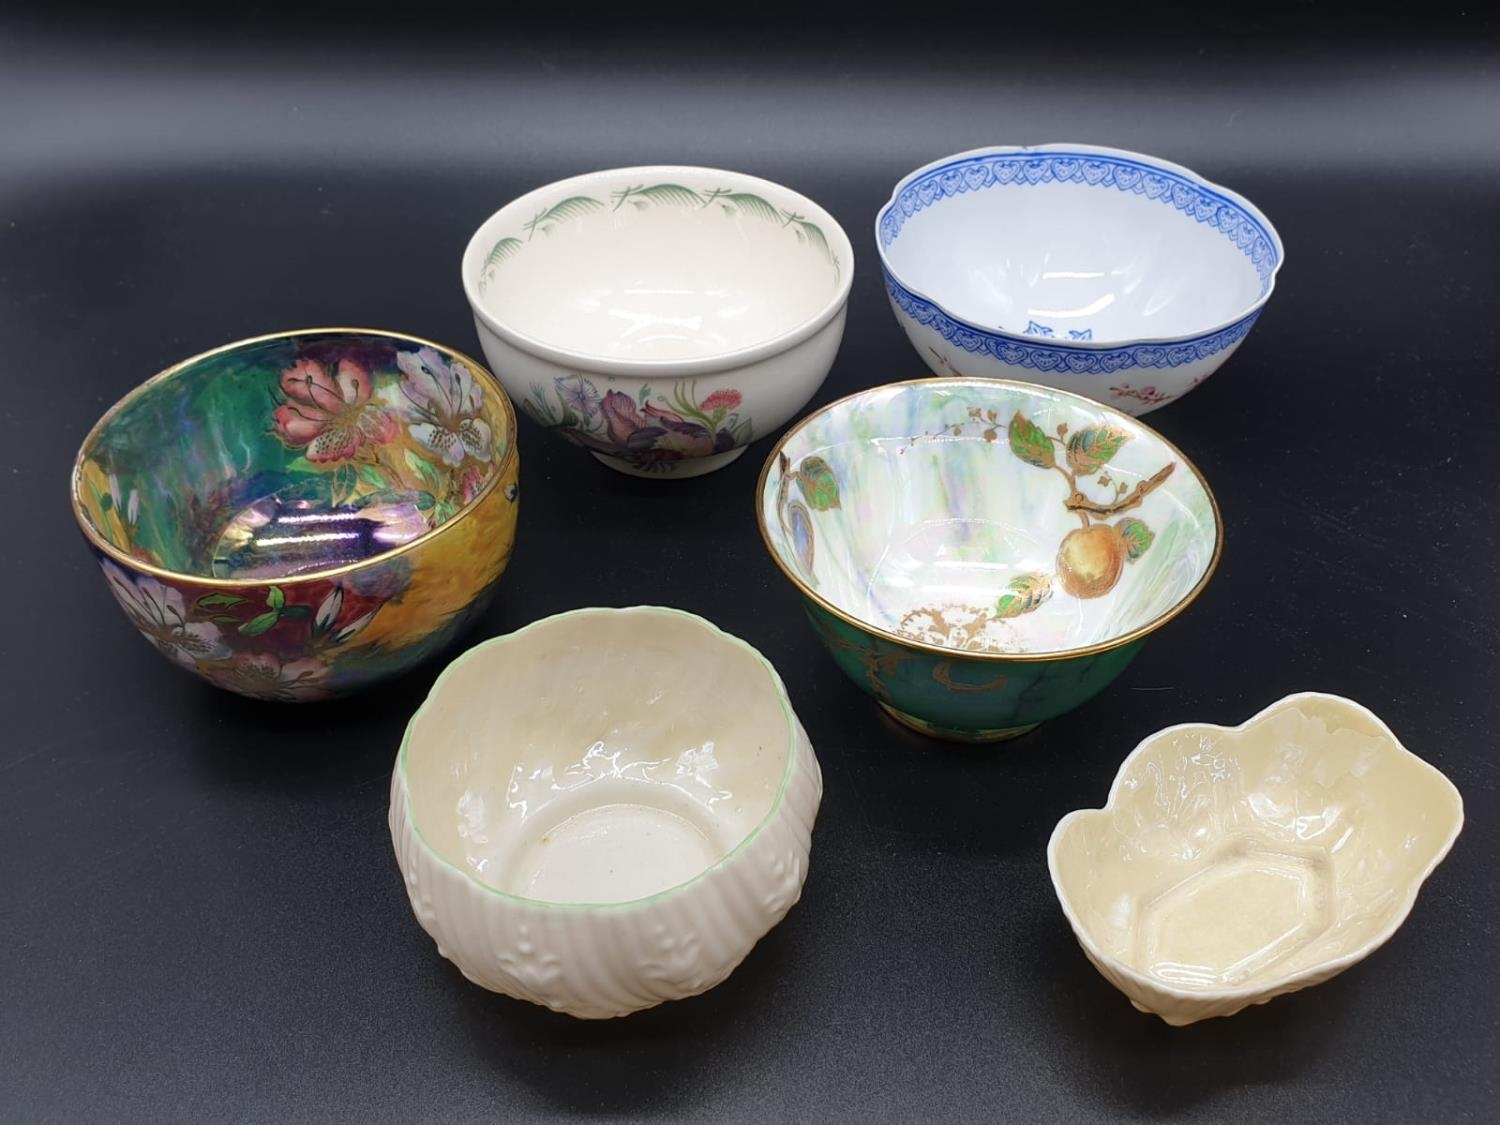 Collection of small bowls, English, Irish and Oriental. Largest bowl is 10cm in diameter. All good